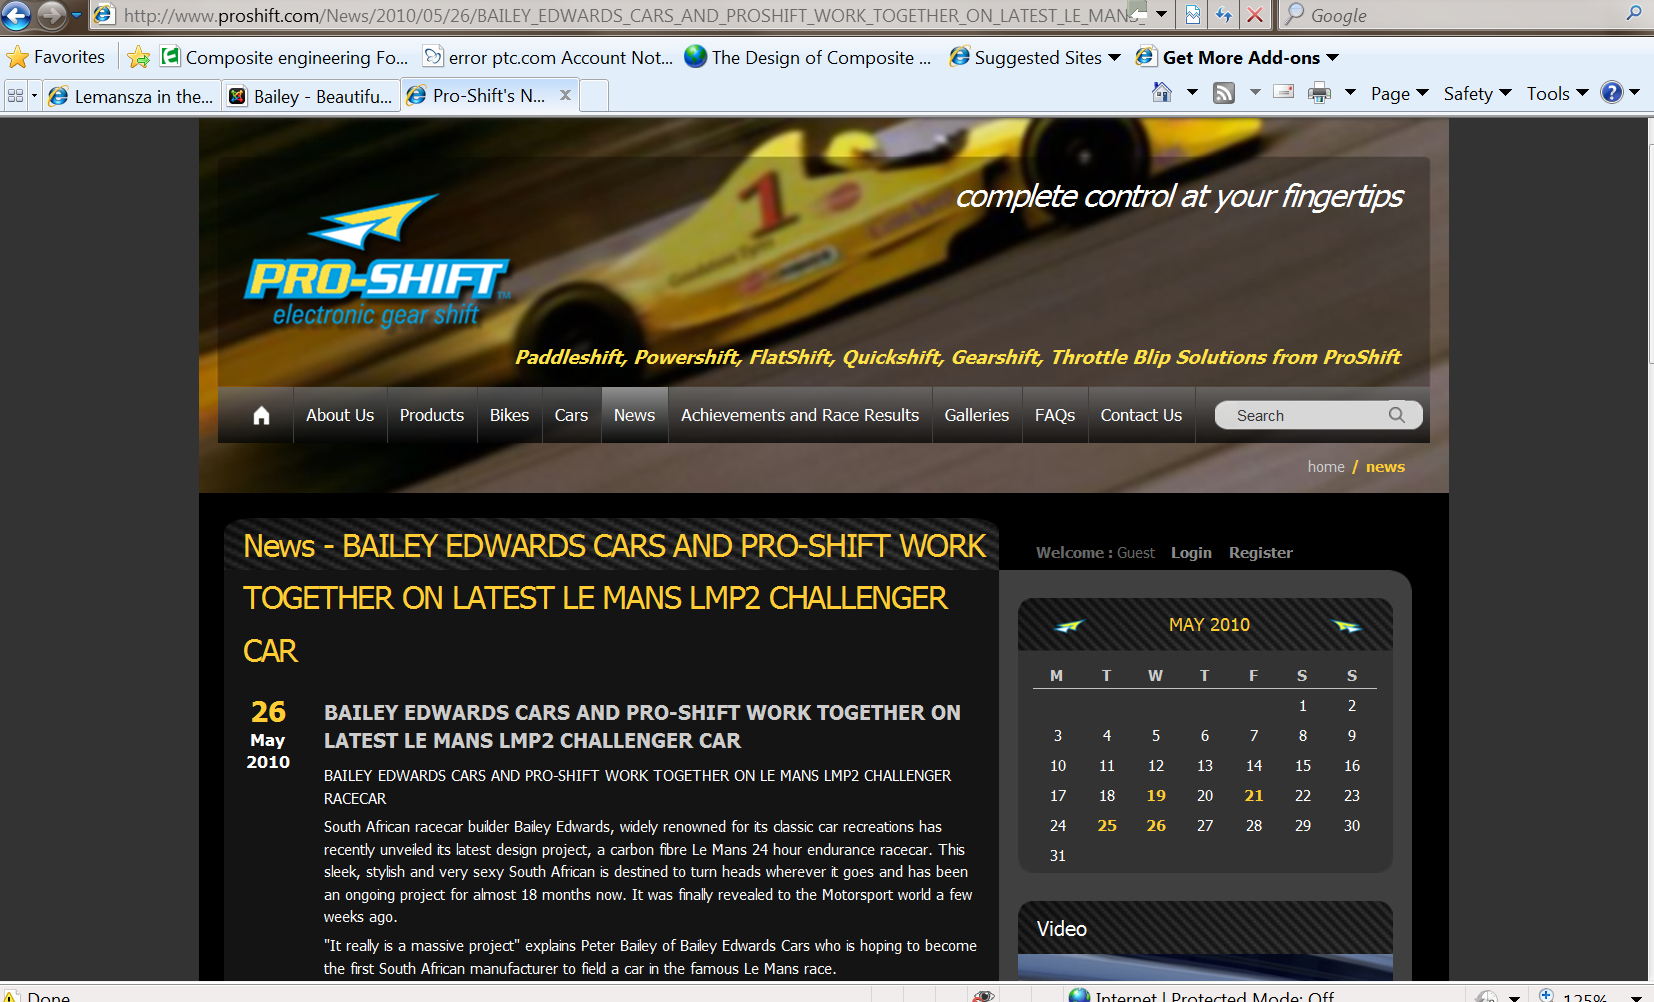 proshift website